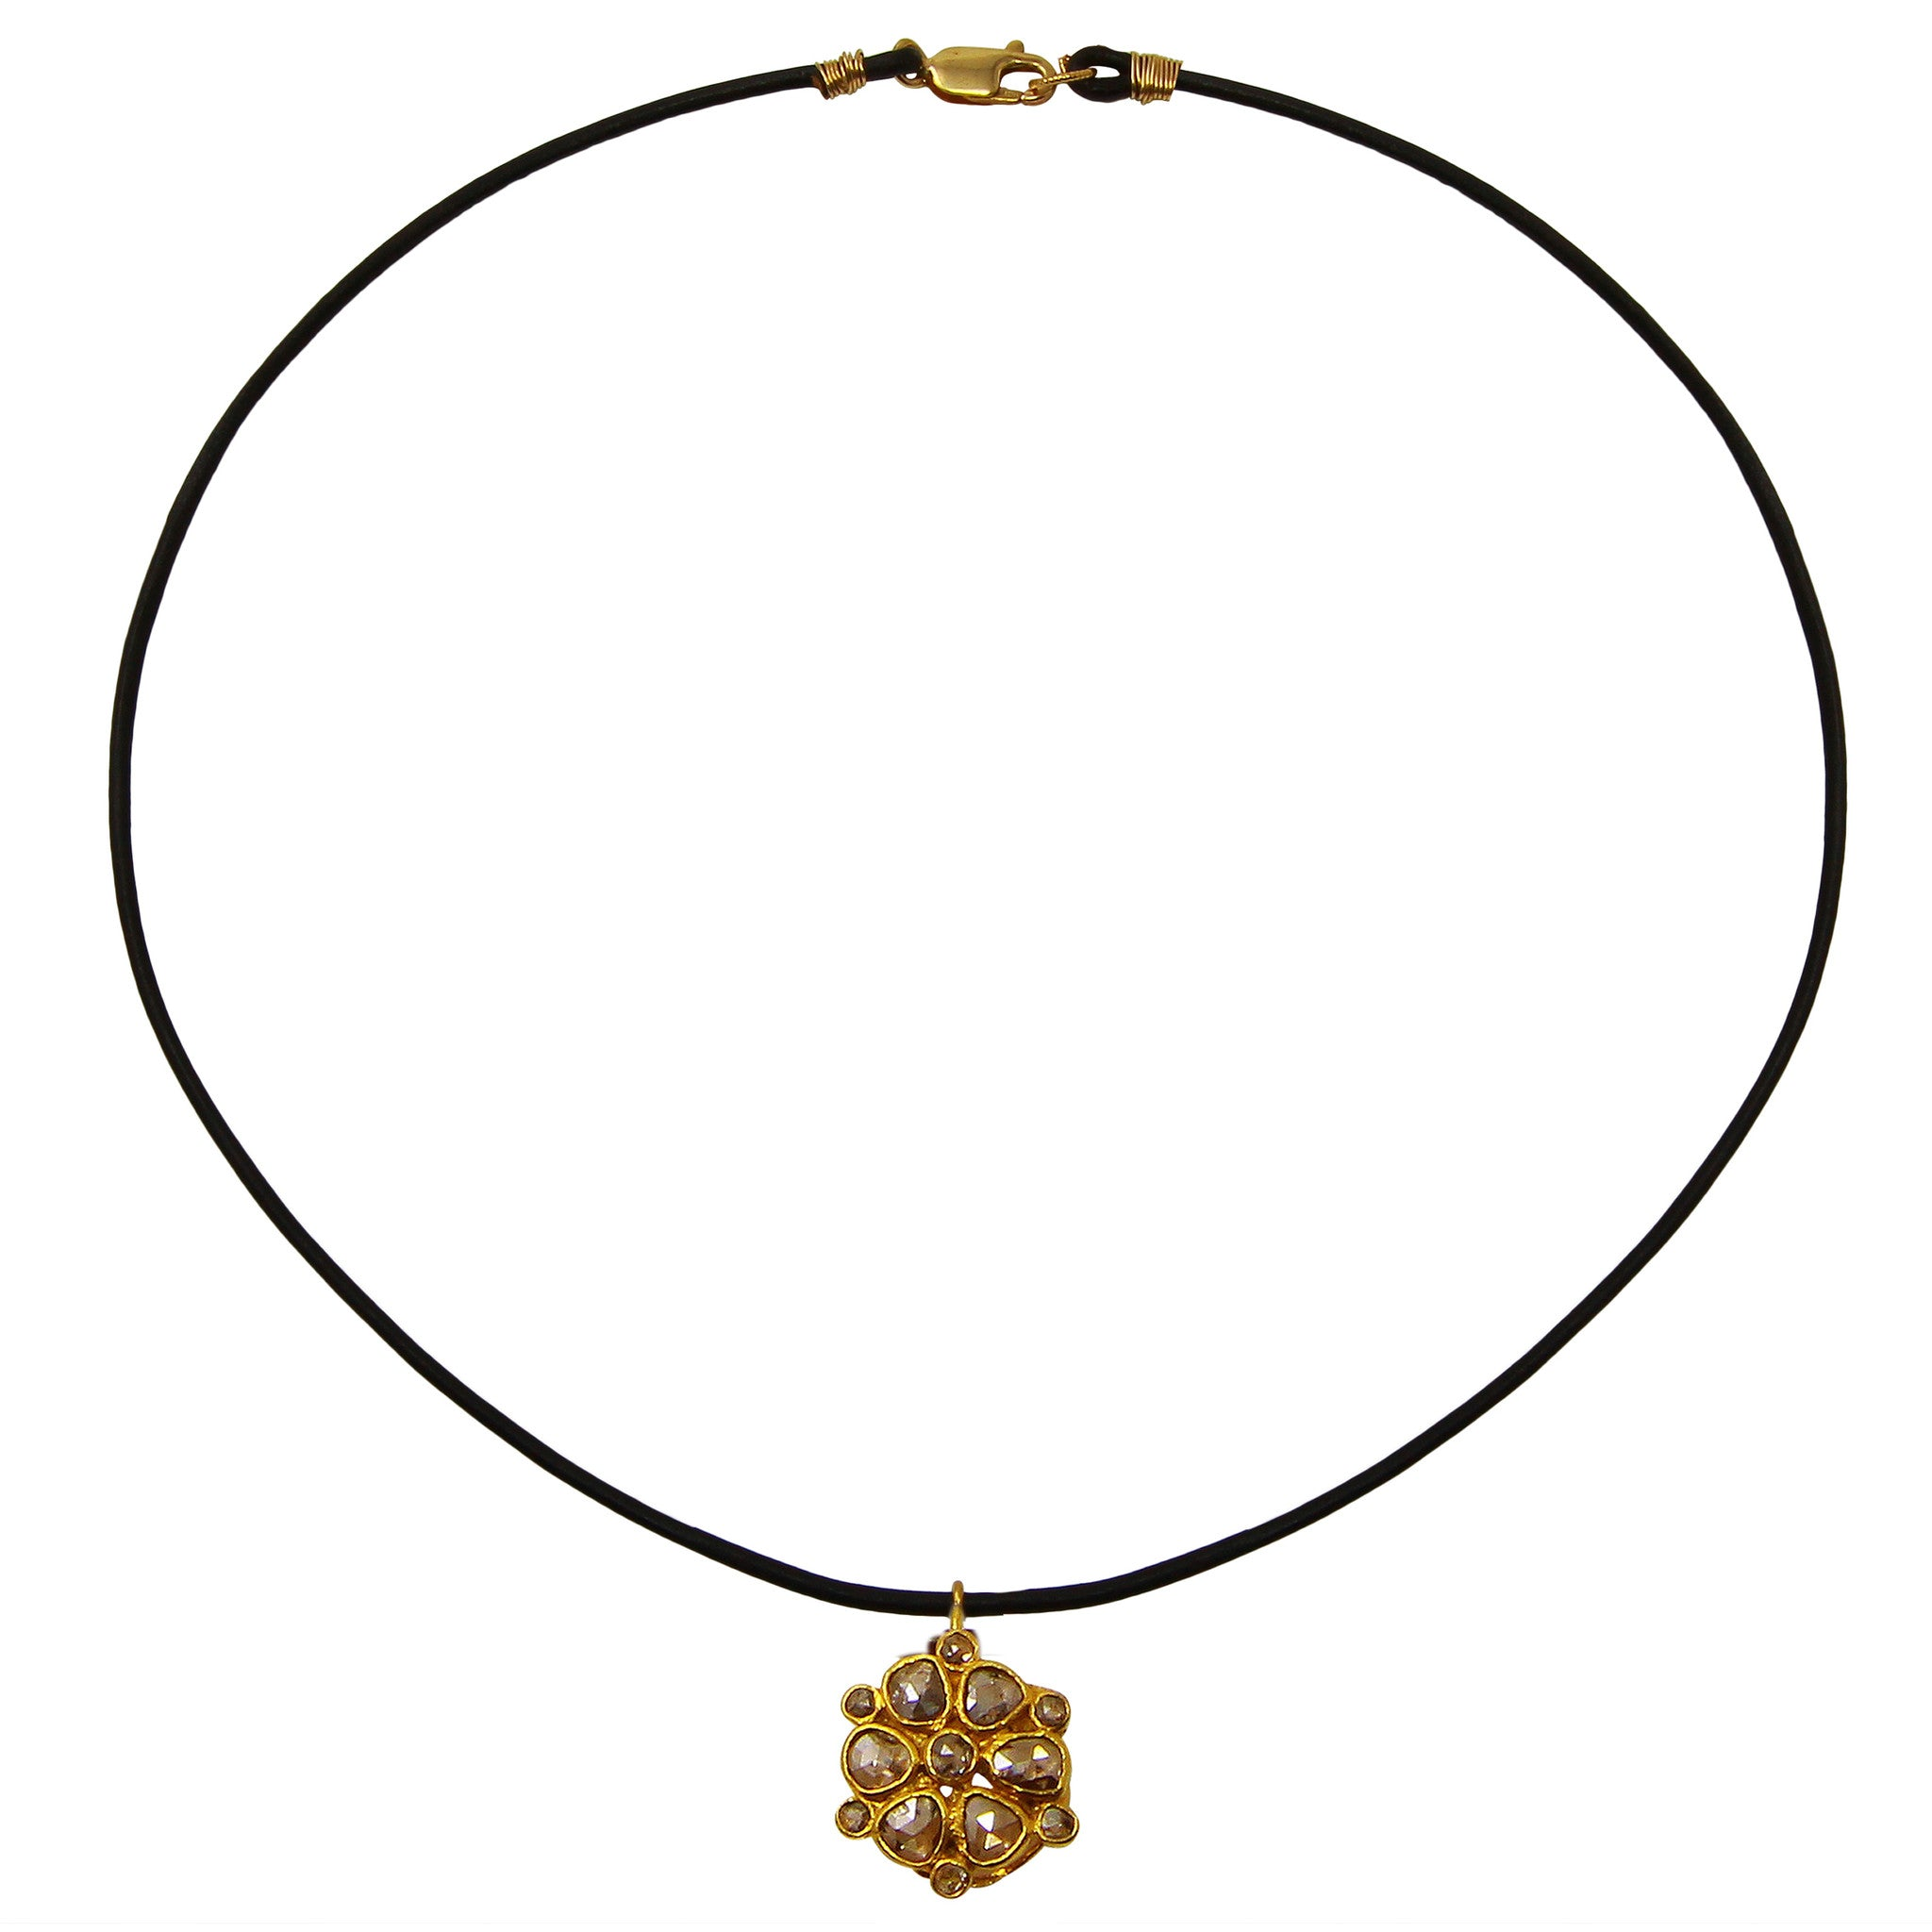 Brown Leather Choker with Rose Cut Diamond Flower Pendant